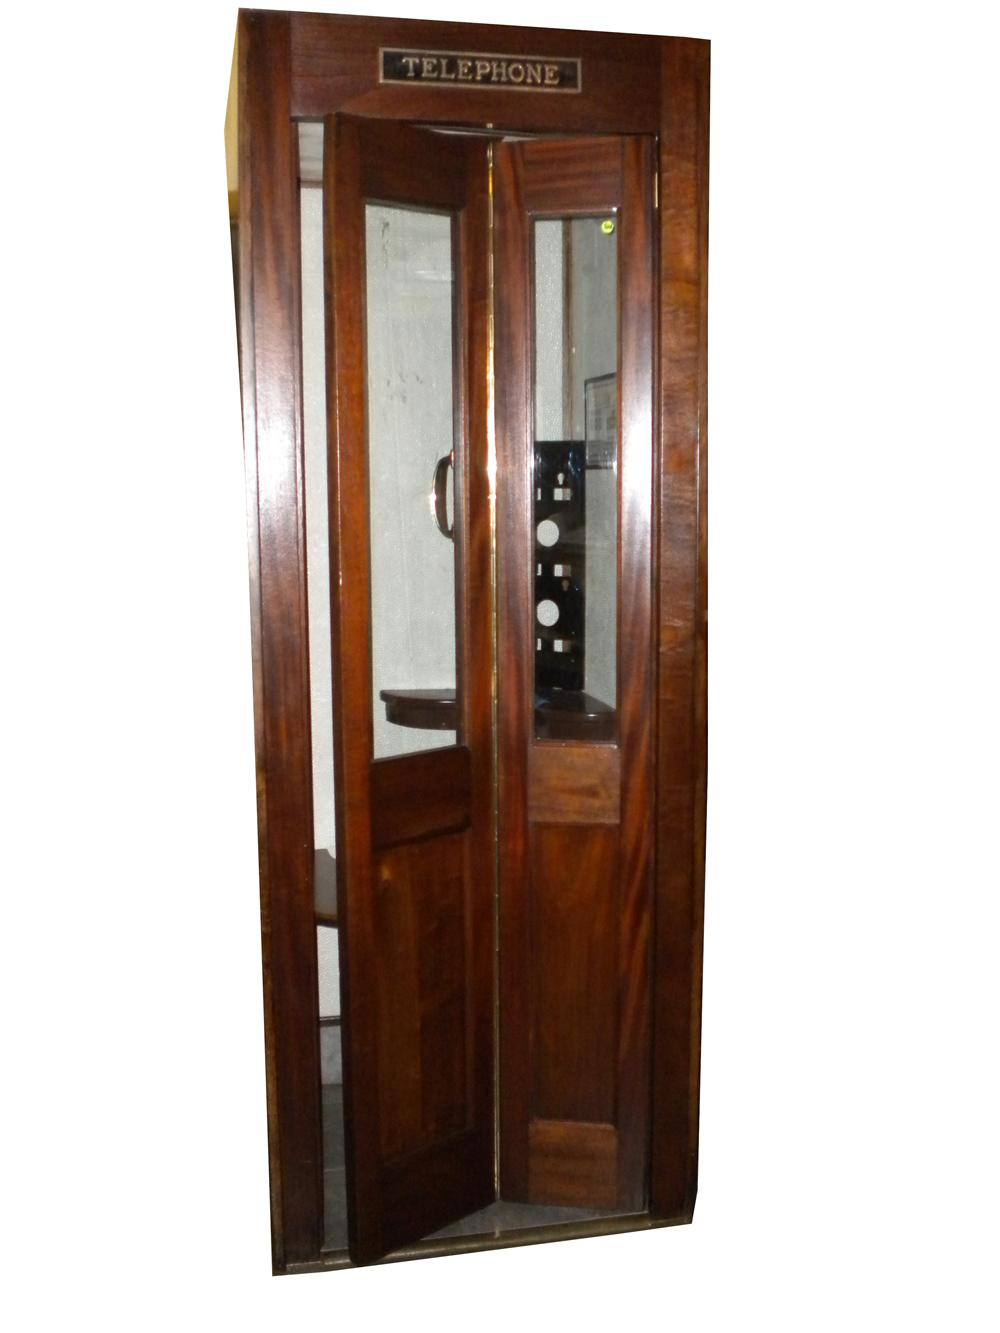 Splendid 1930s restored wood Public Telephone booth complete with working light and pay phone. - Front 3/4 - 138921